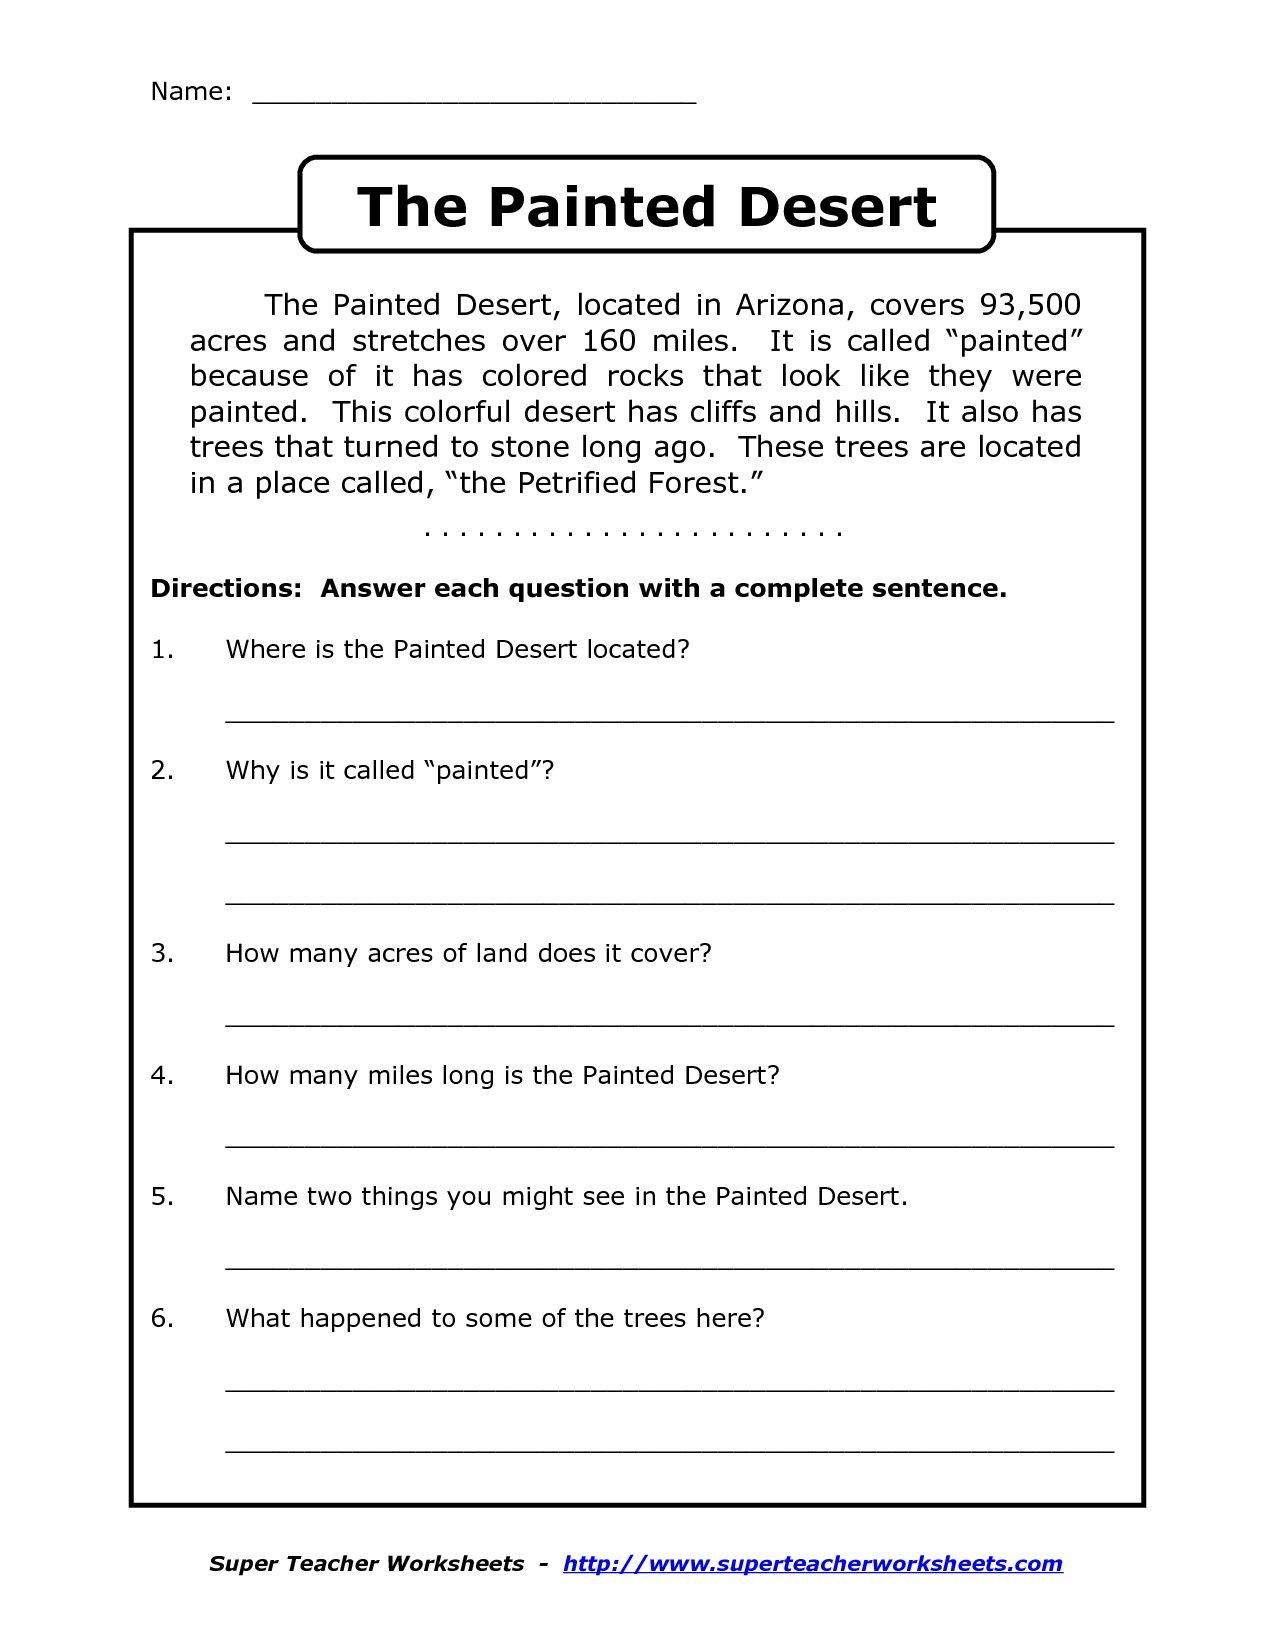 Paragraph Editing Worksheets 4th Grade Prehension Worksheet for 1st Grade Y2 P3 the Painted